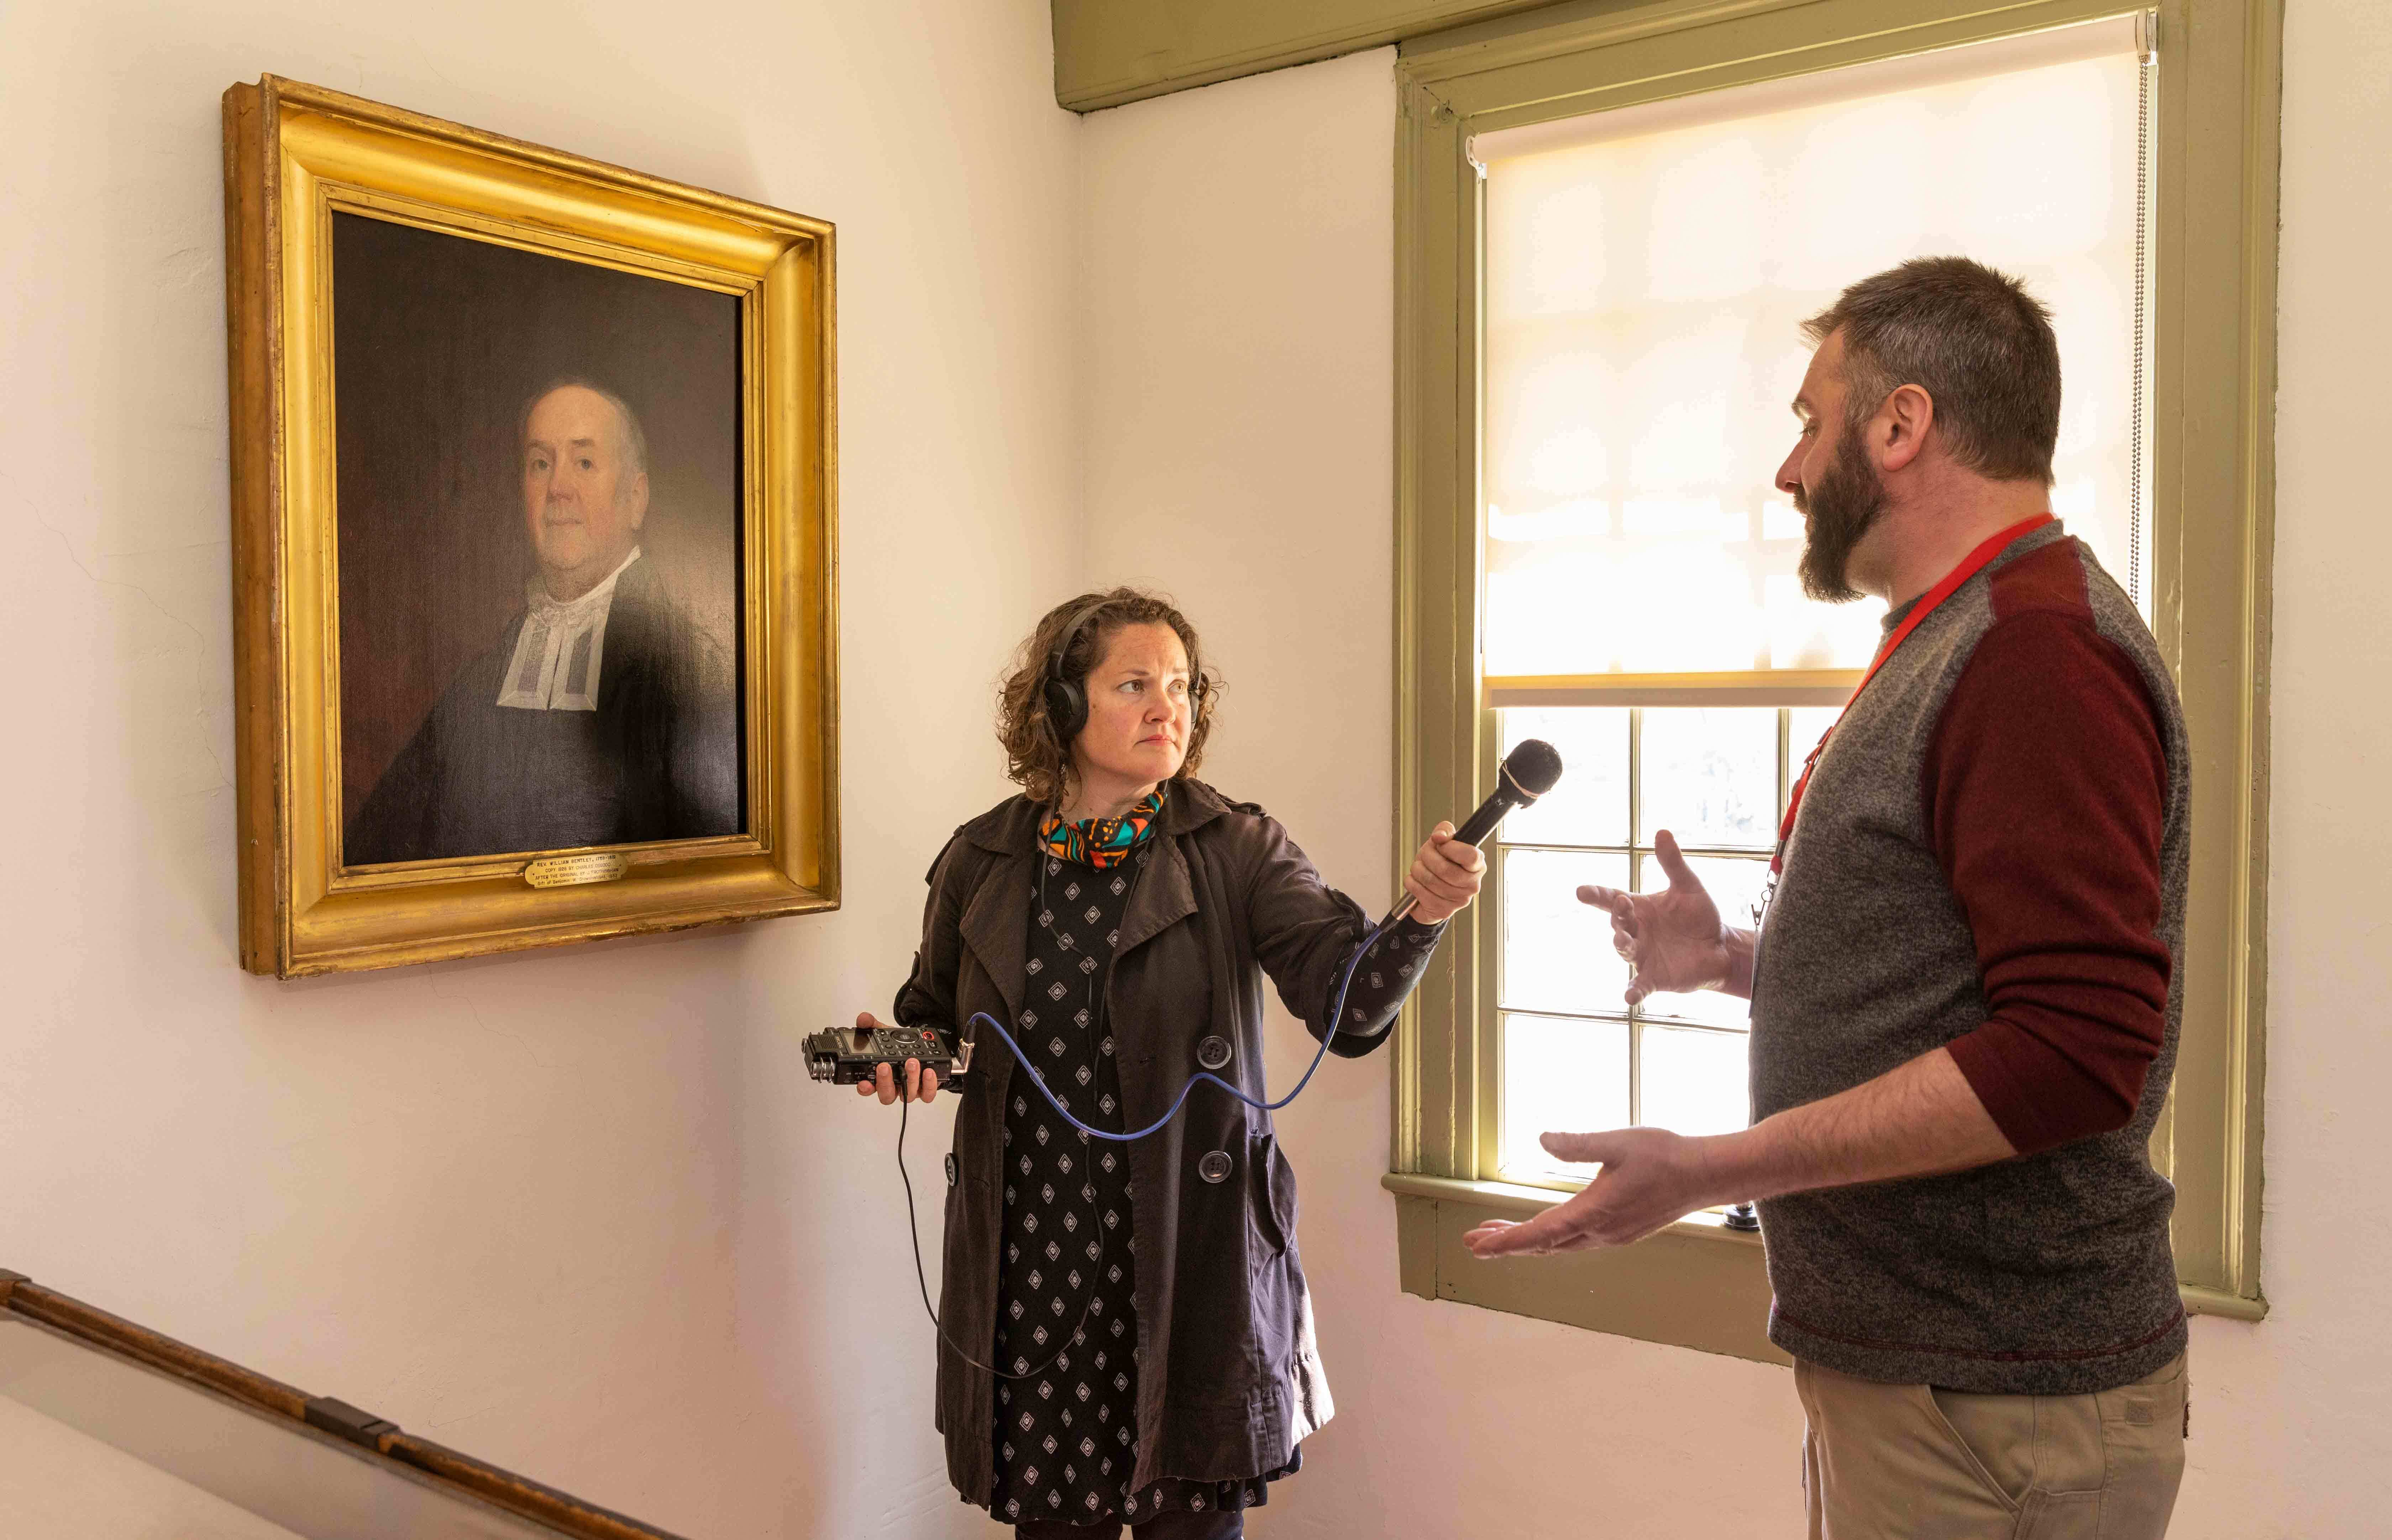 Dinah Cardein and Steven Mallory inside the Crowninshield-Bentley house